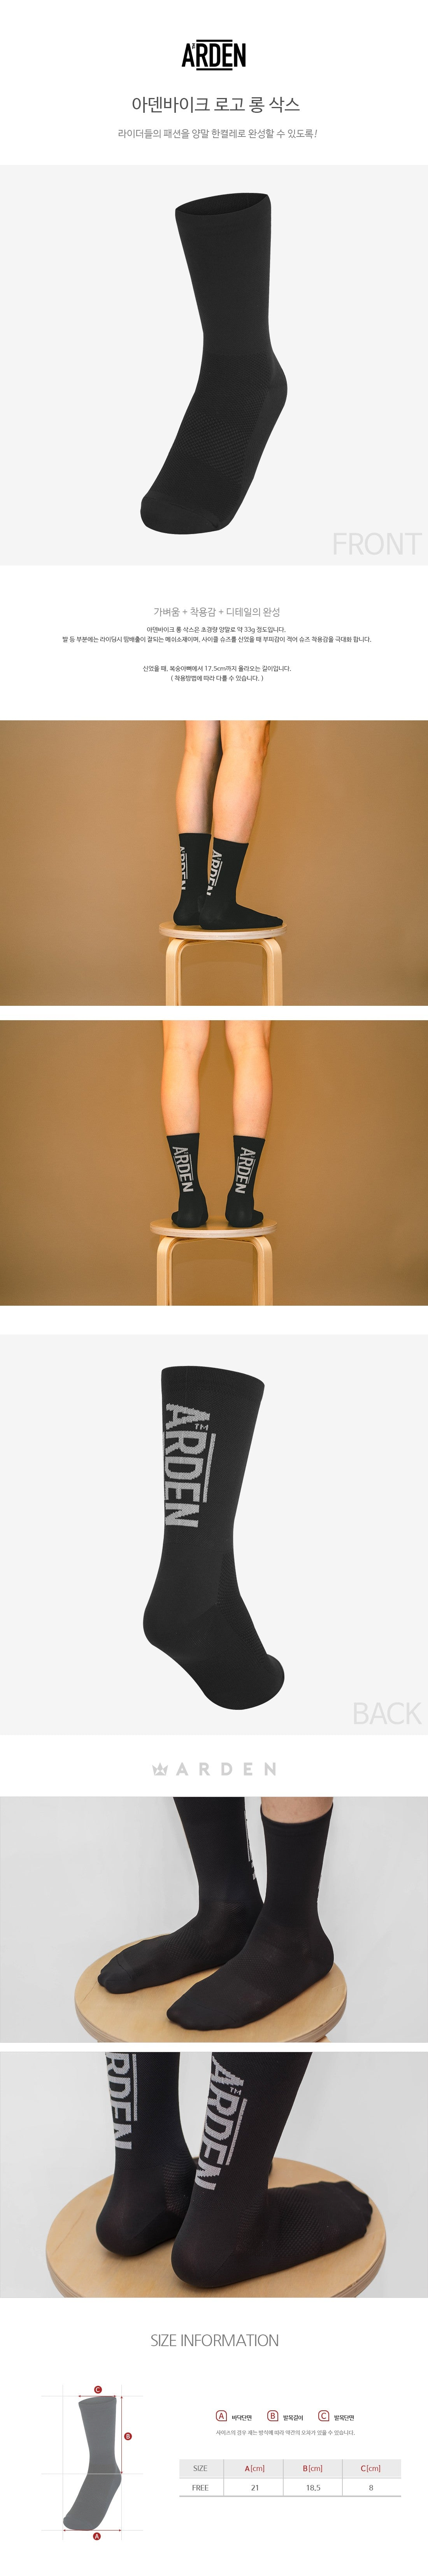 Arden Logo Long Socks Black